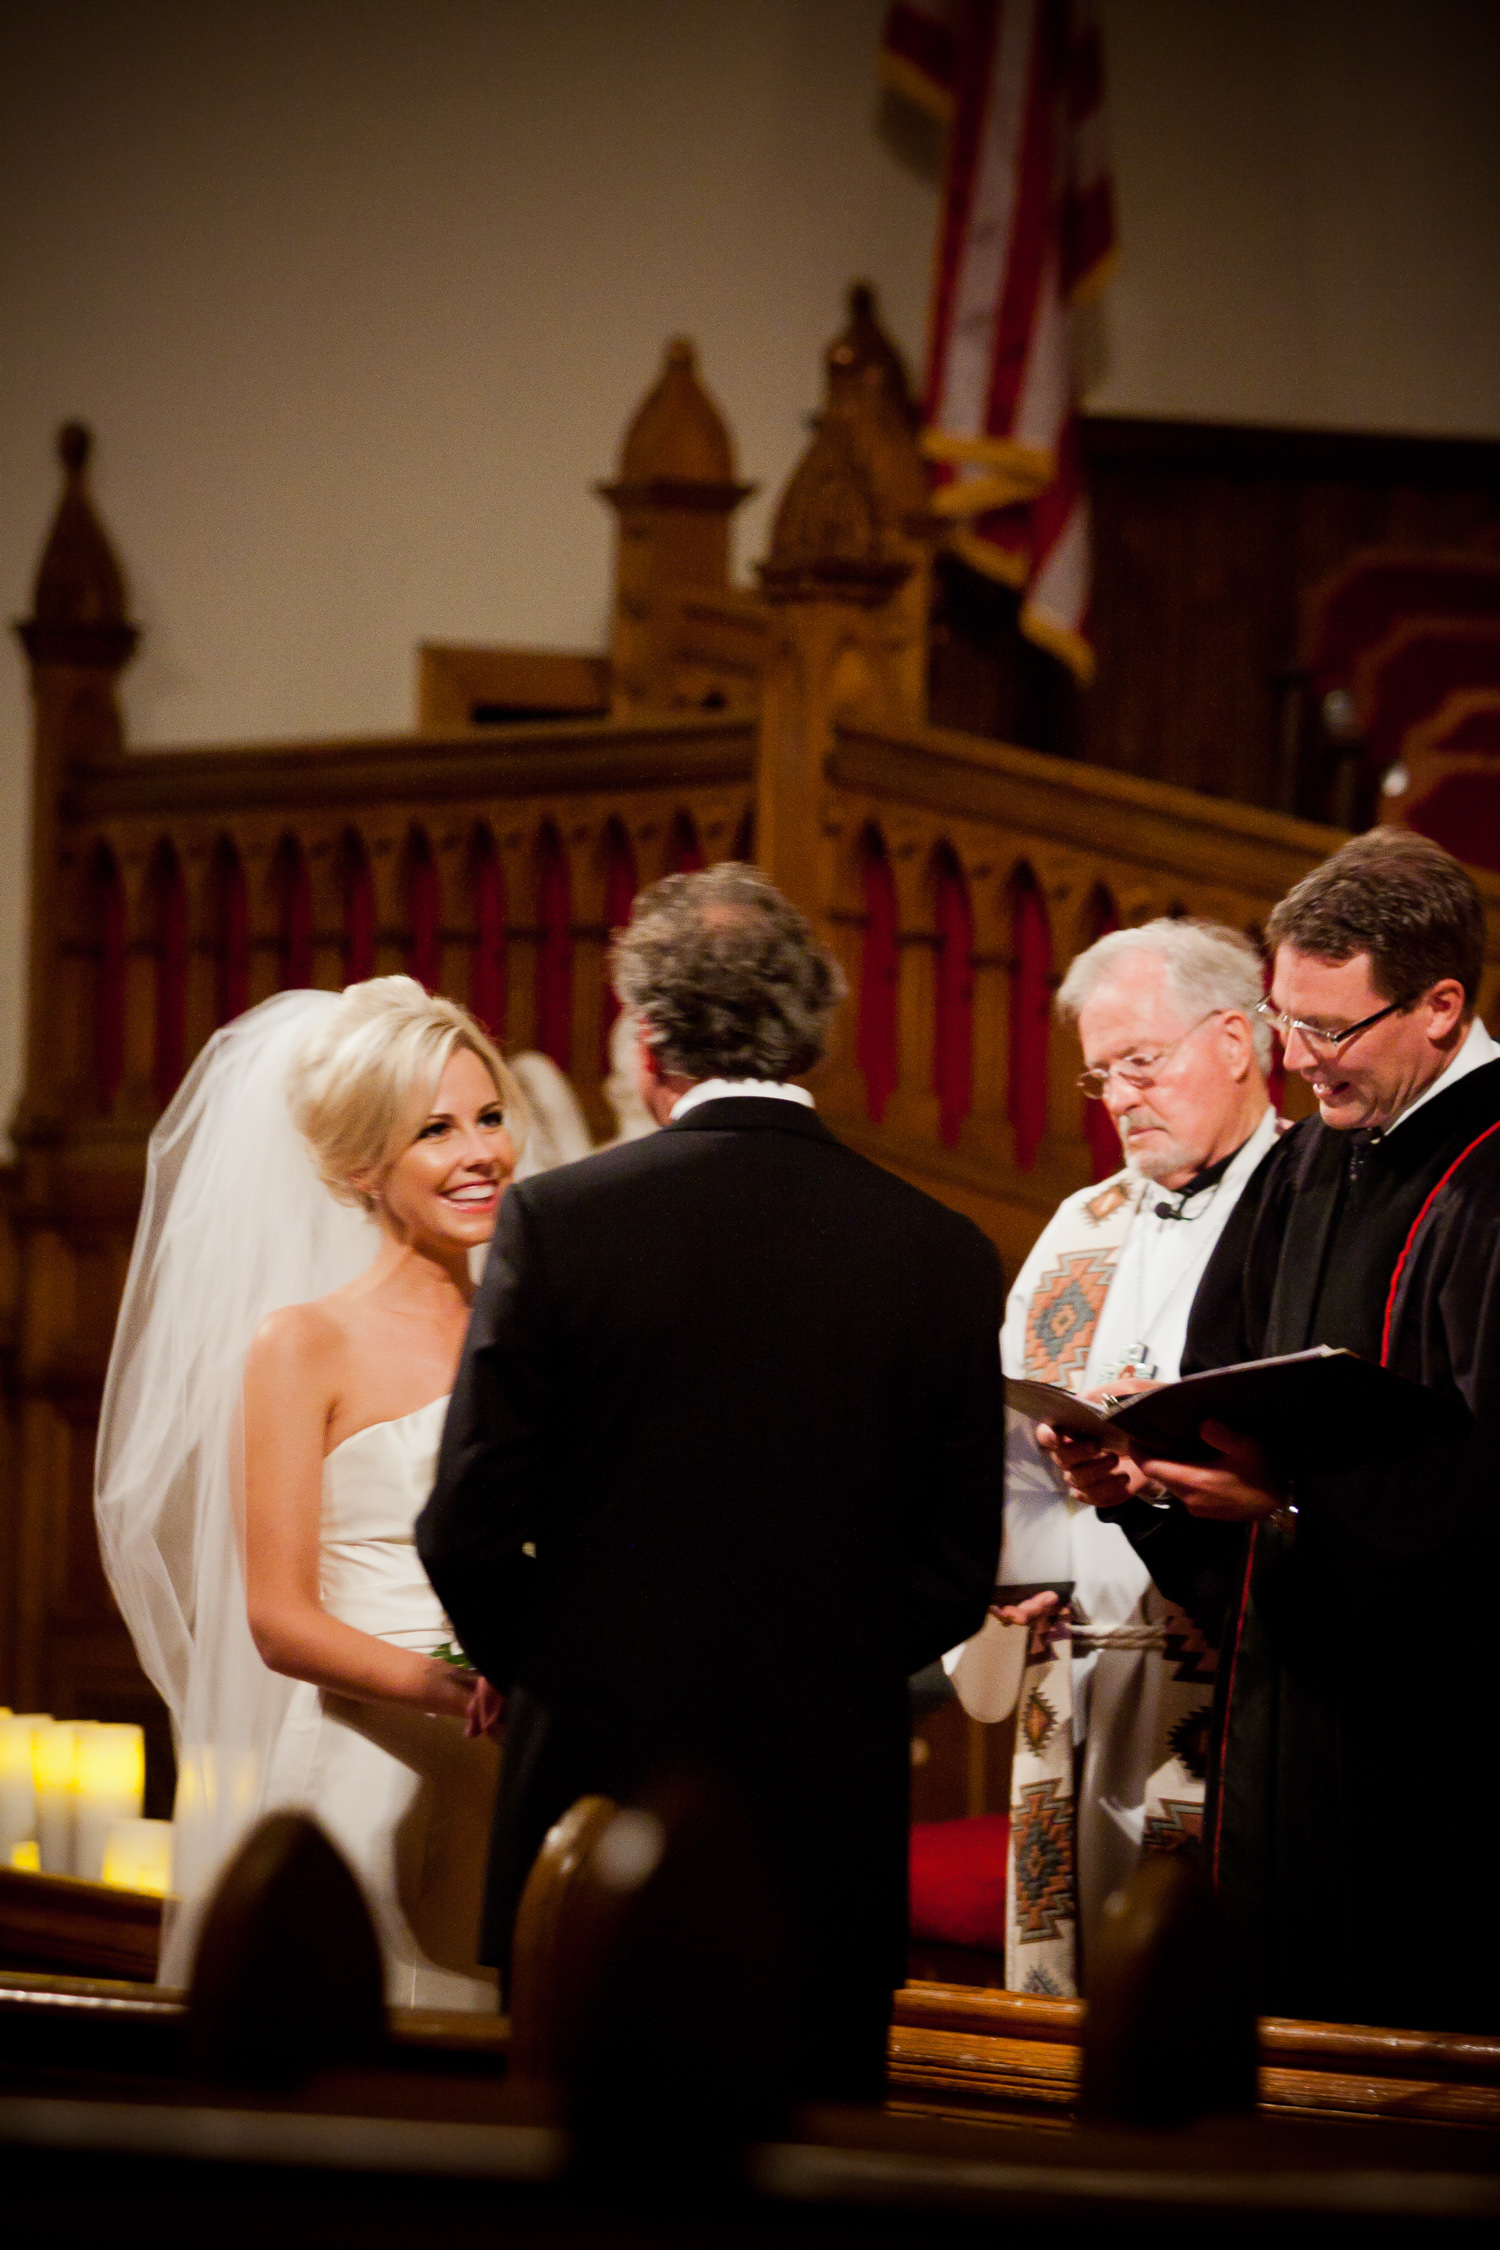 Four_Seasons_Denver_Wedding_045.JPG